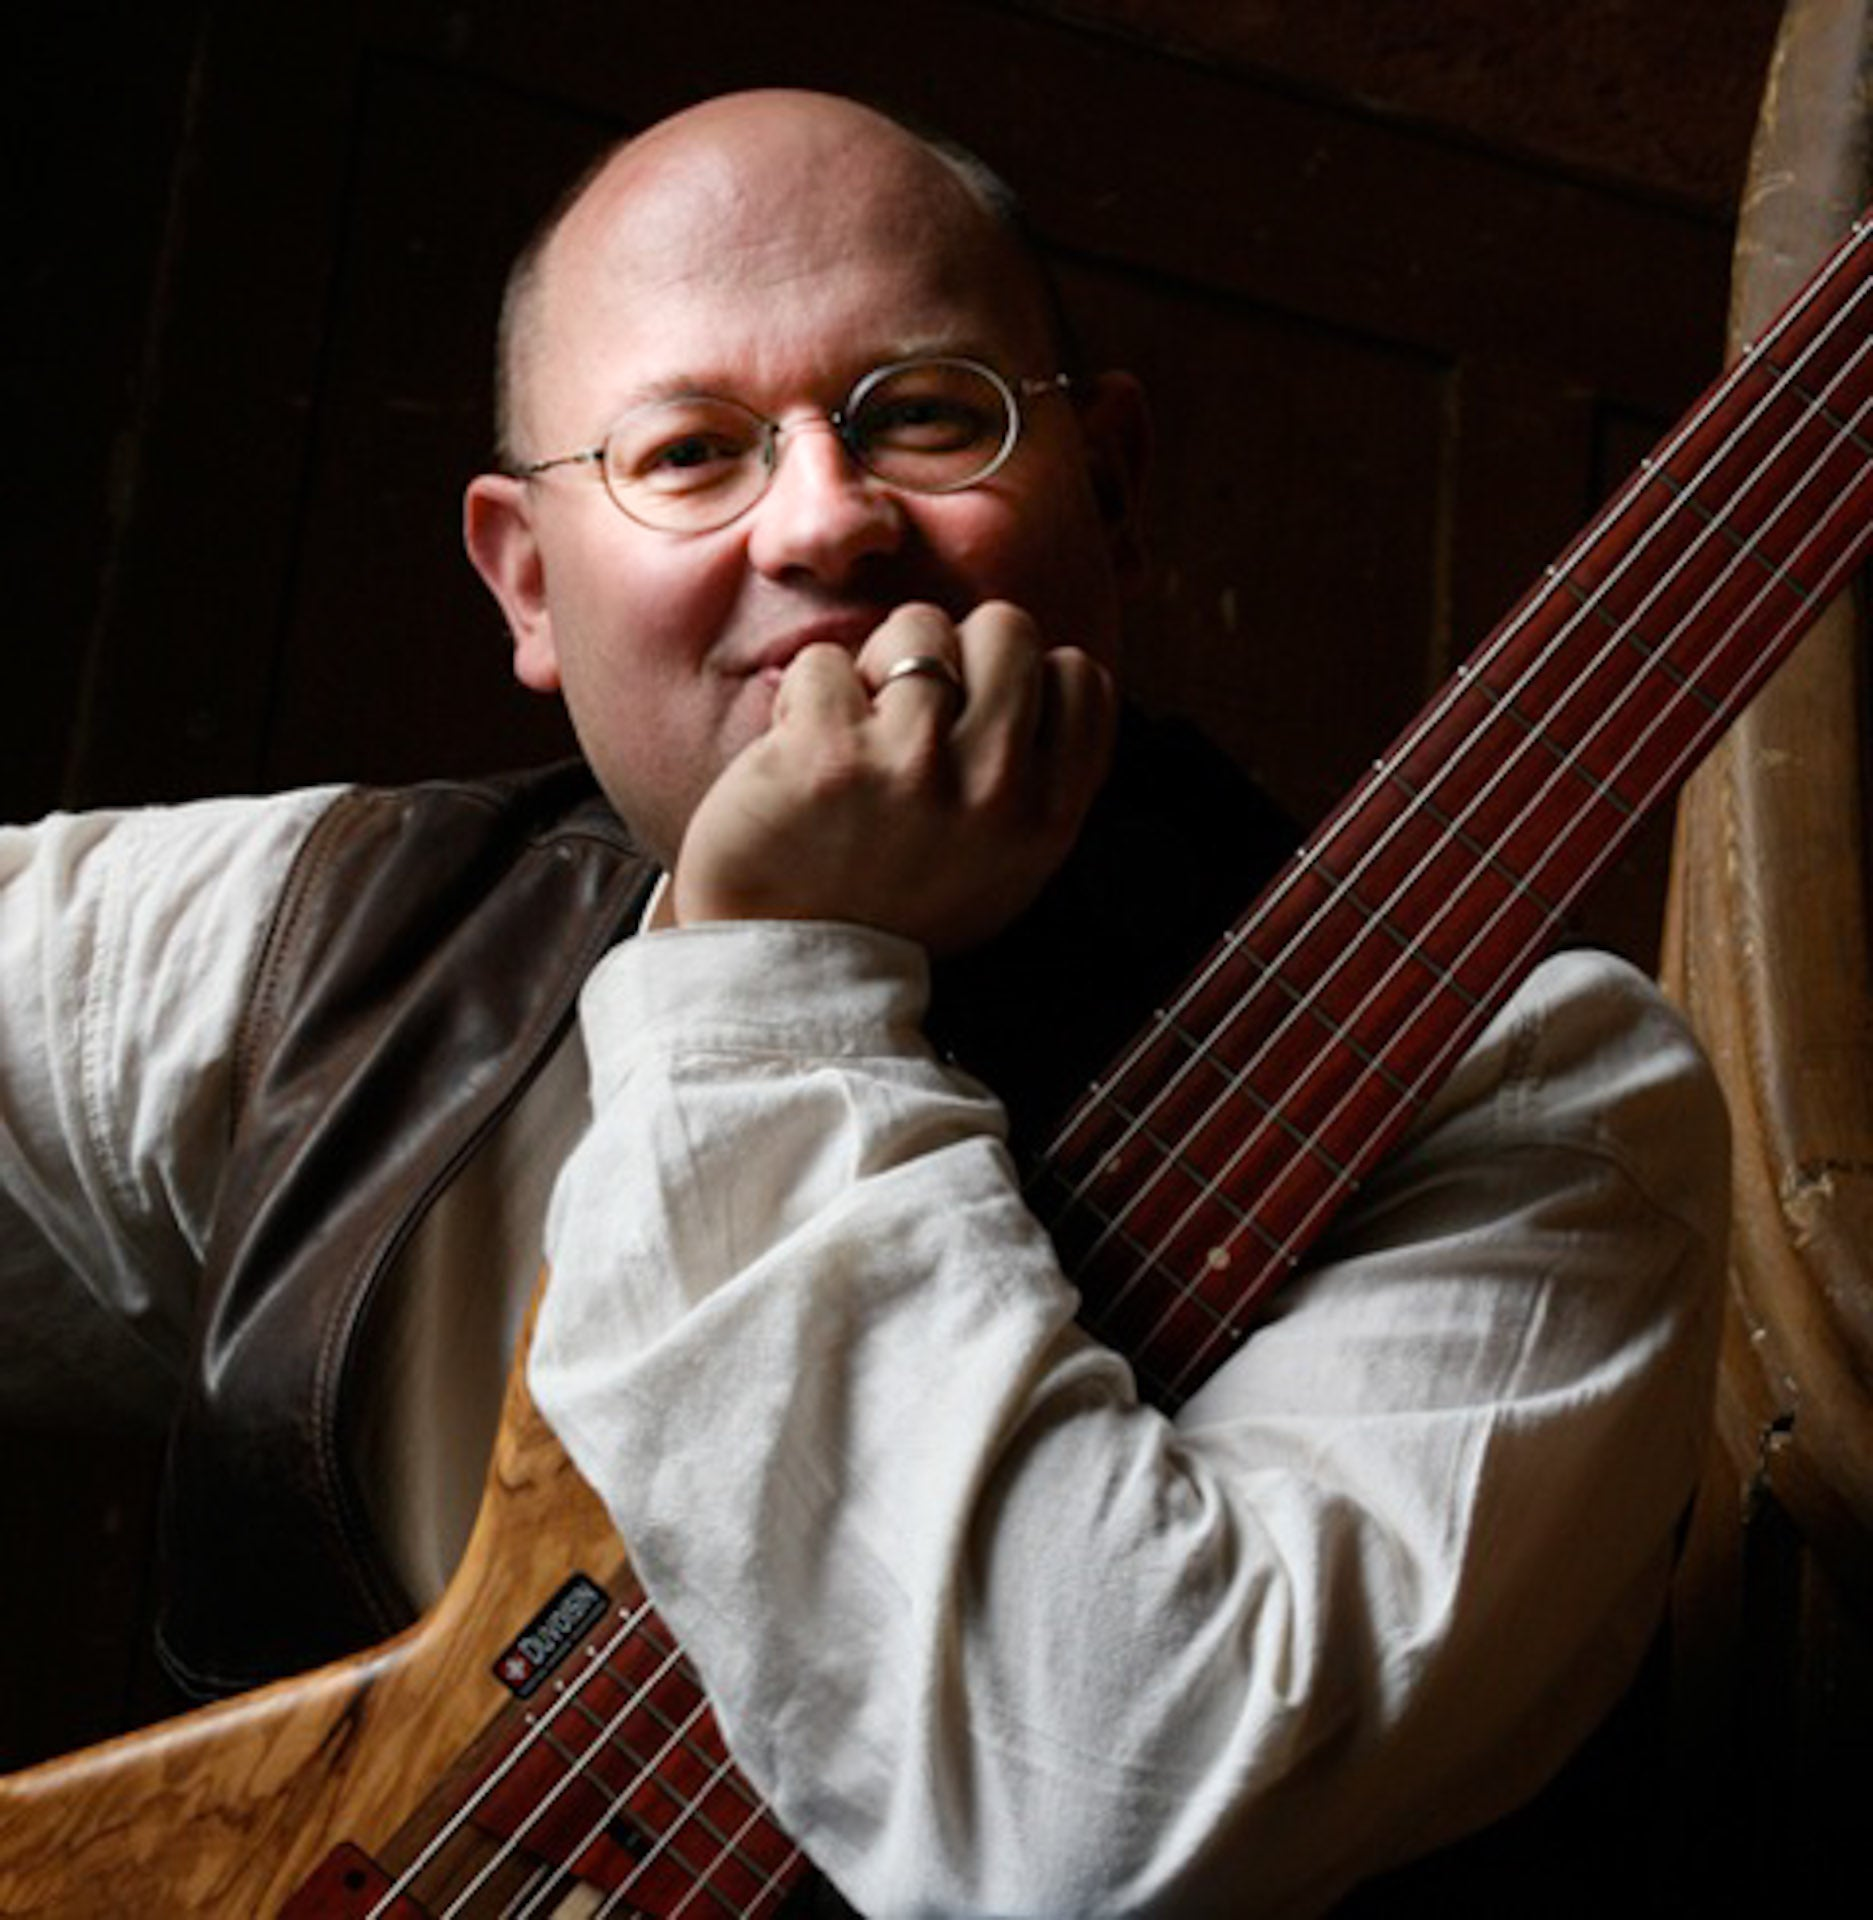 Pascal Kaeser plays Duvoisin Basses